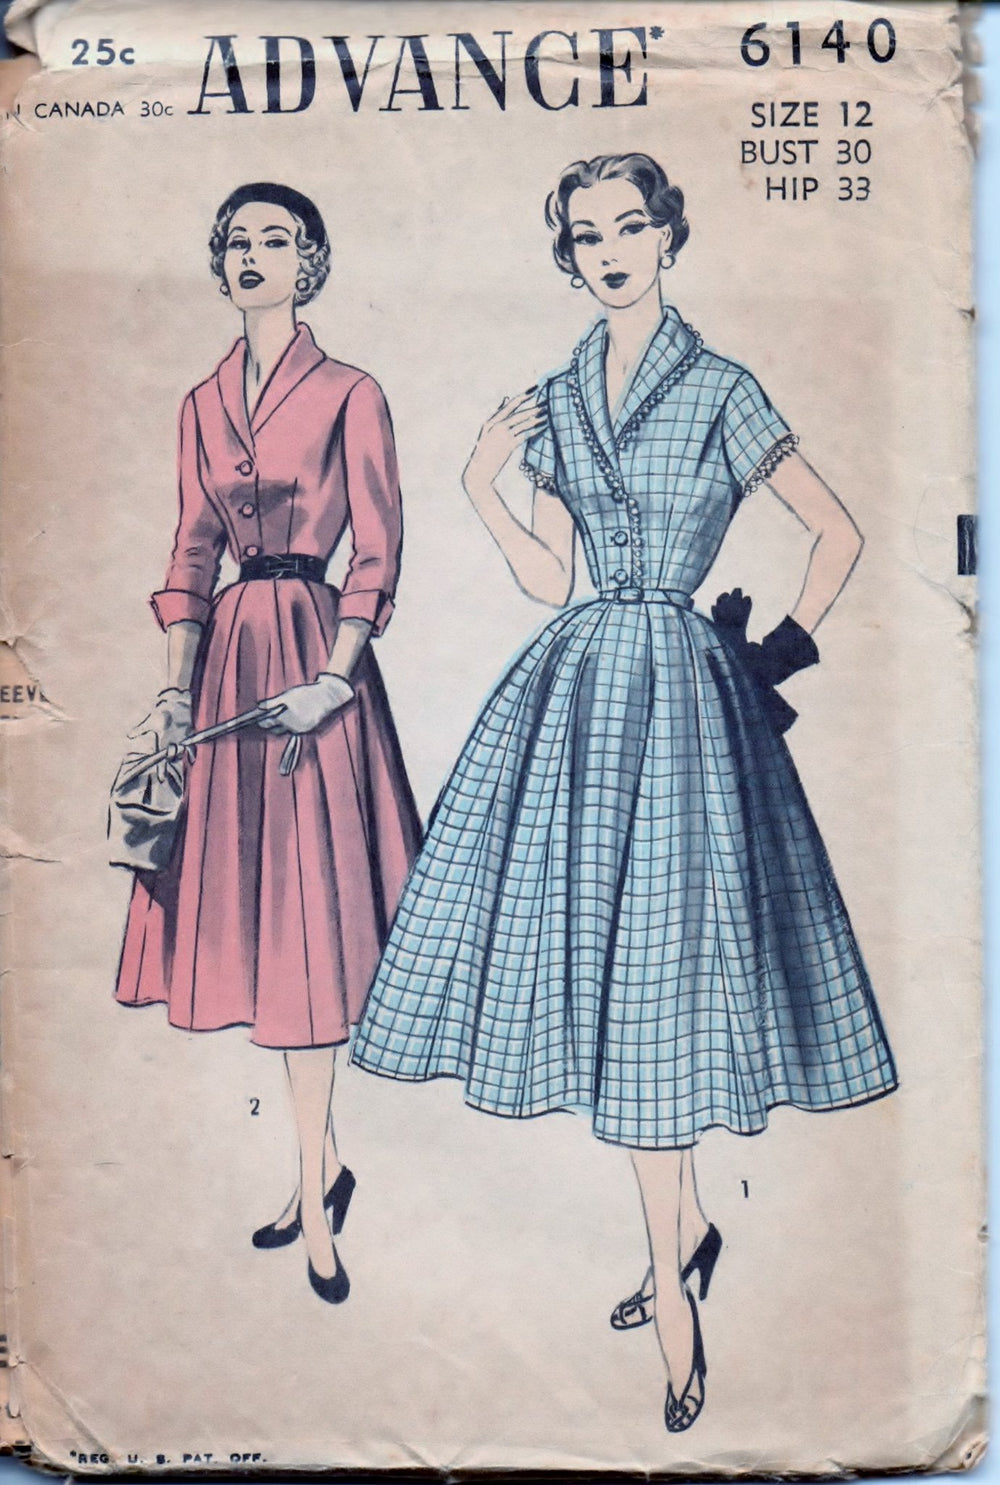 Advance 6140 Ladies Shirtwaist Day Dress Flared Skirt Vintage 1950's Sewing Pattern Unprinted - VintageStitching - Vintage Sewing Patterns